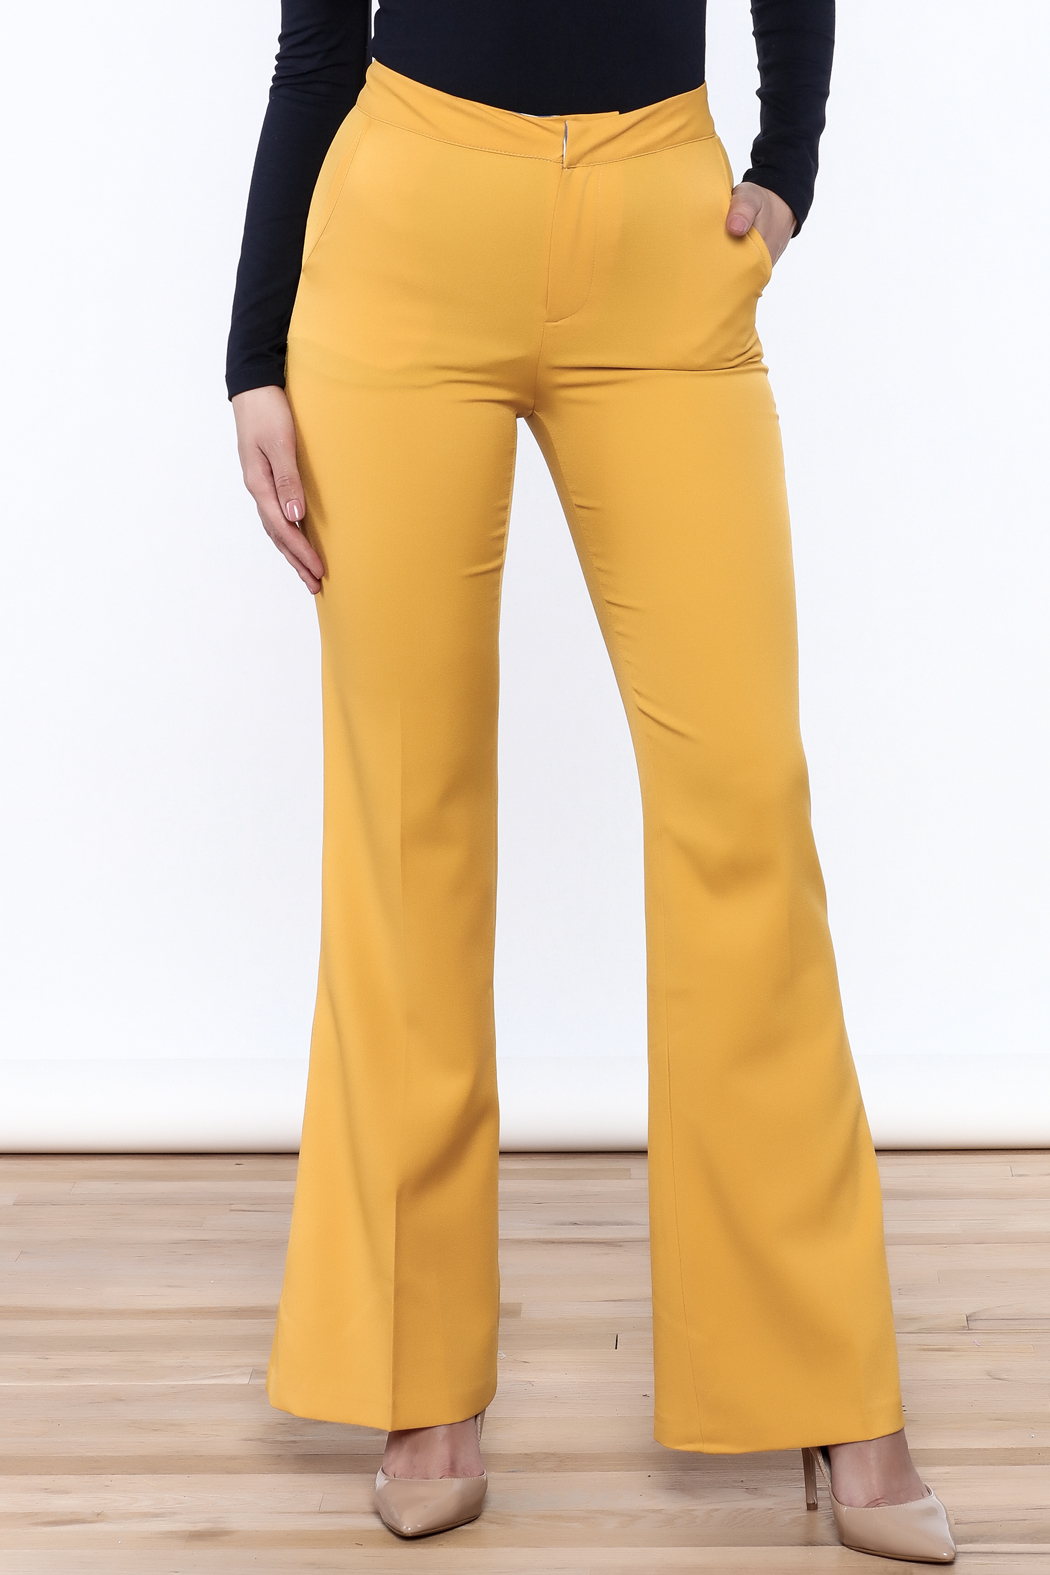 Jealous Tomato Mustard Bell Pants - Front Cropped Image